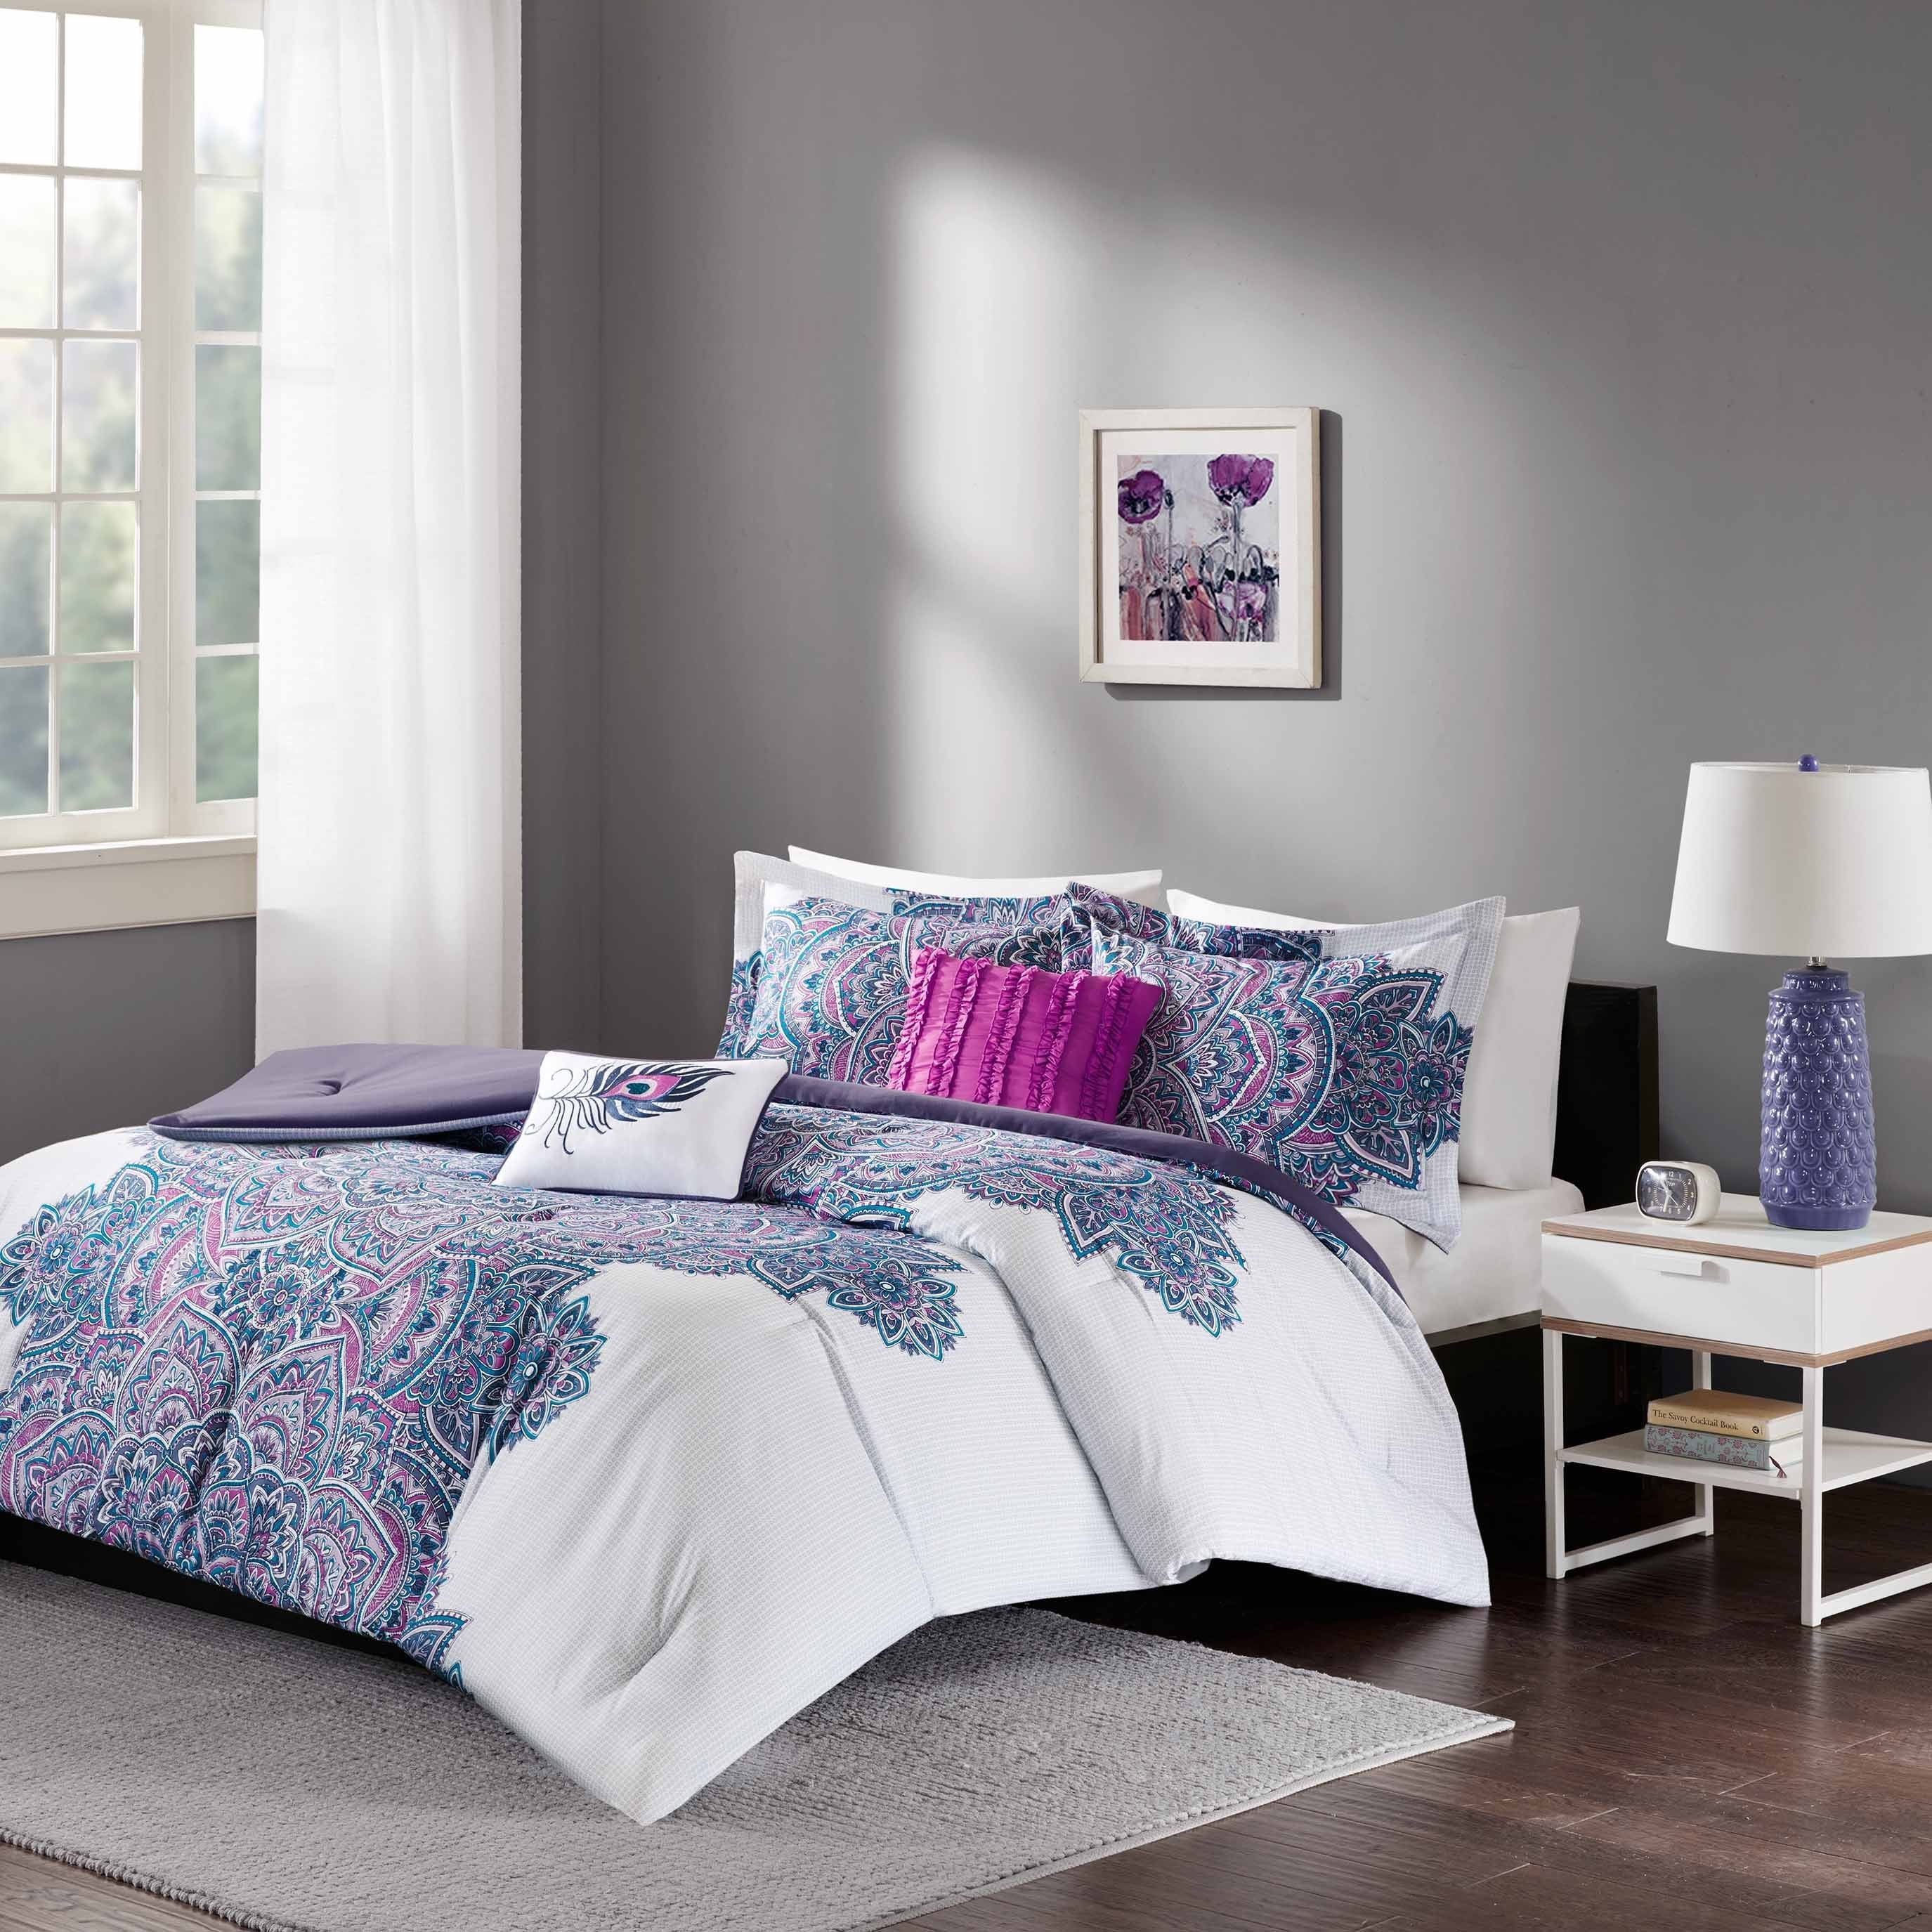 doodled decorative includes quilt circles zone comforter sham carly mi itm twin purple tapes pillow set dots polka xl twill